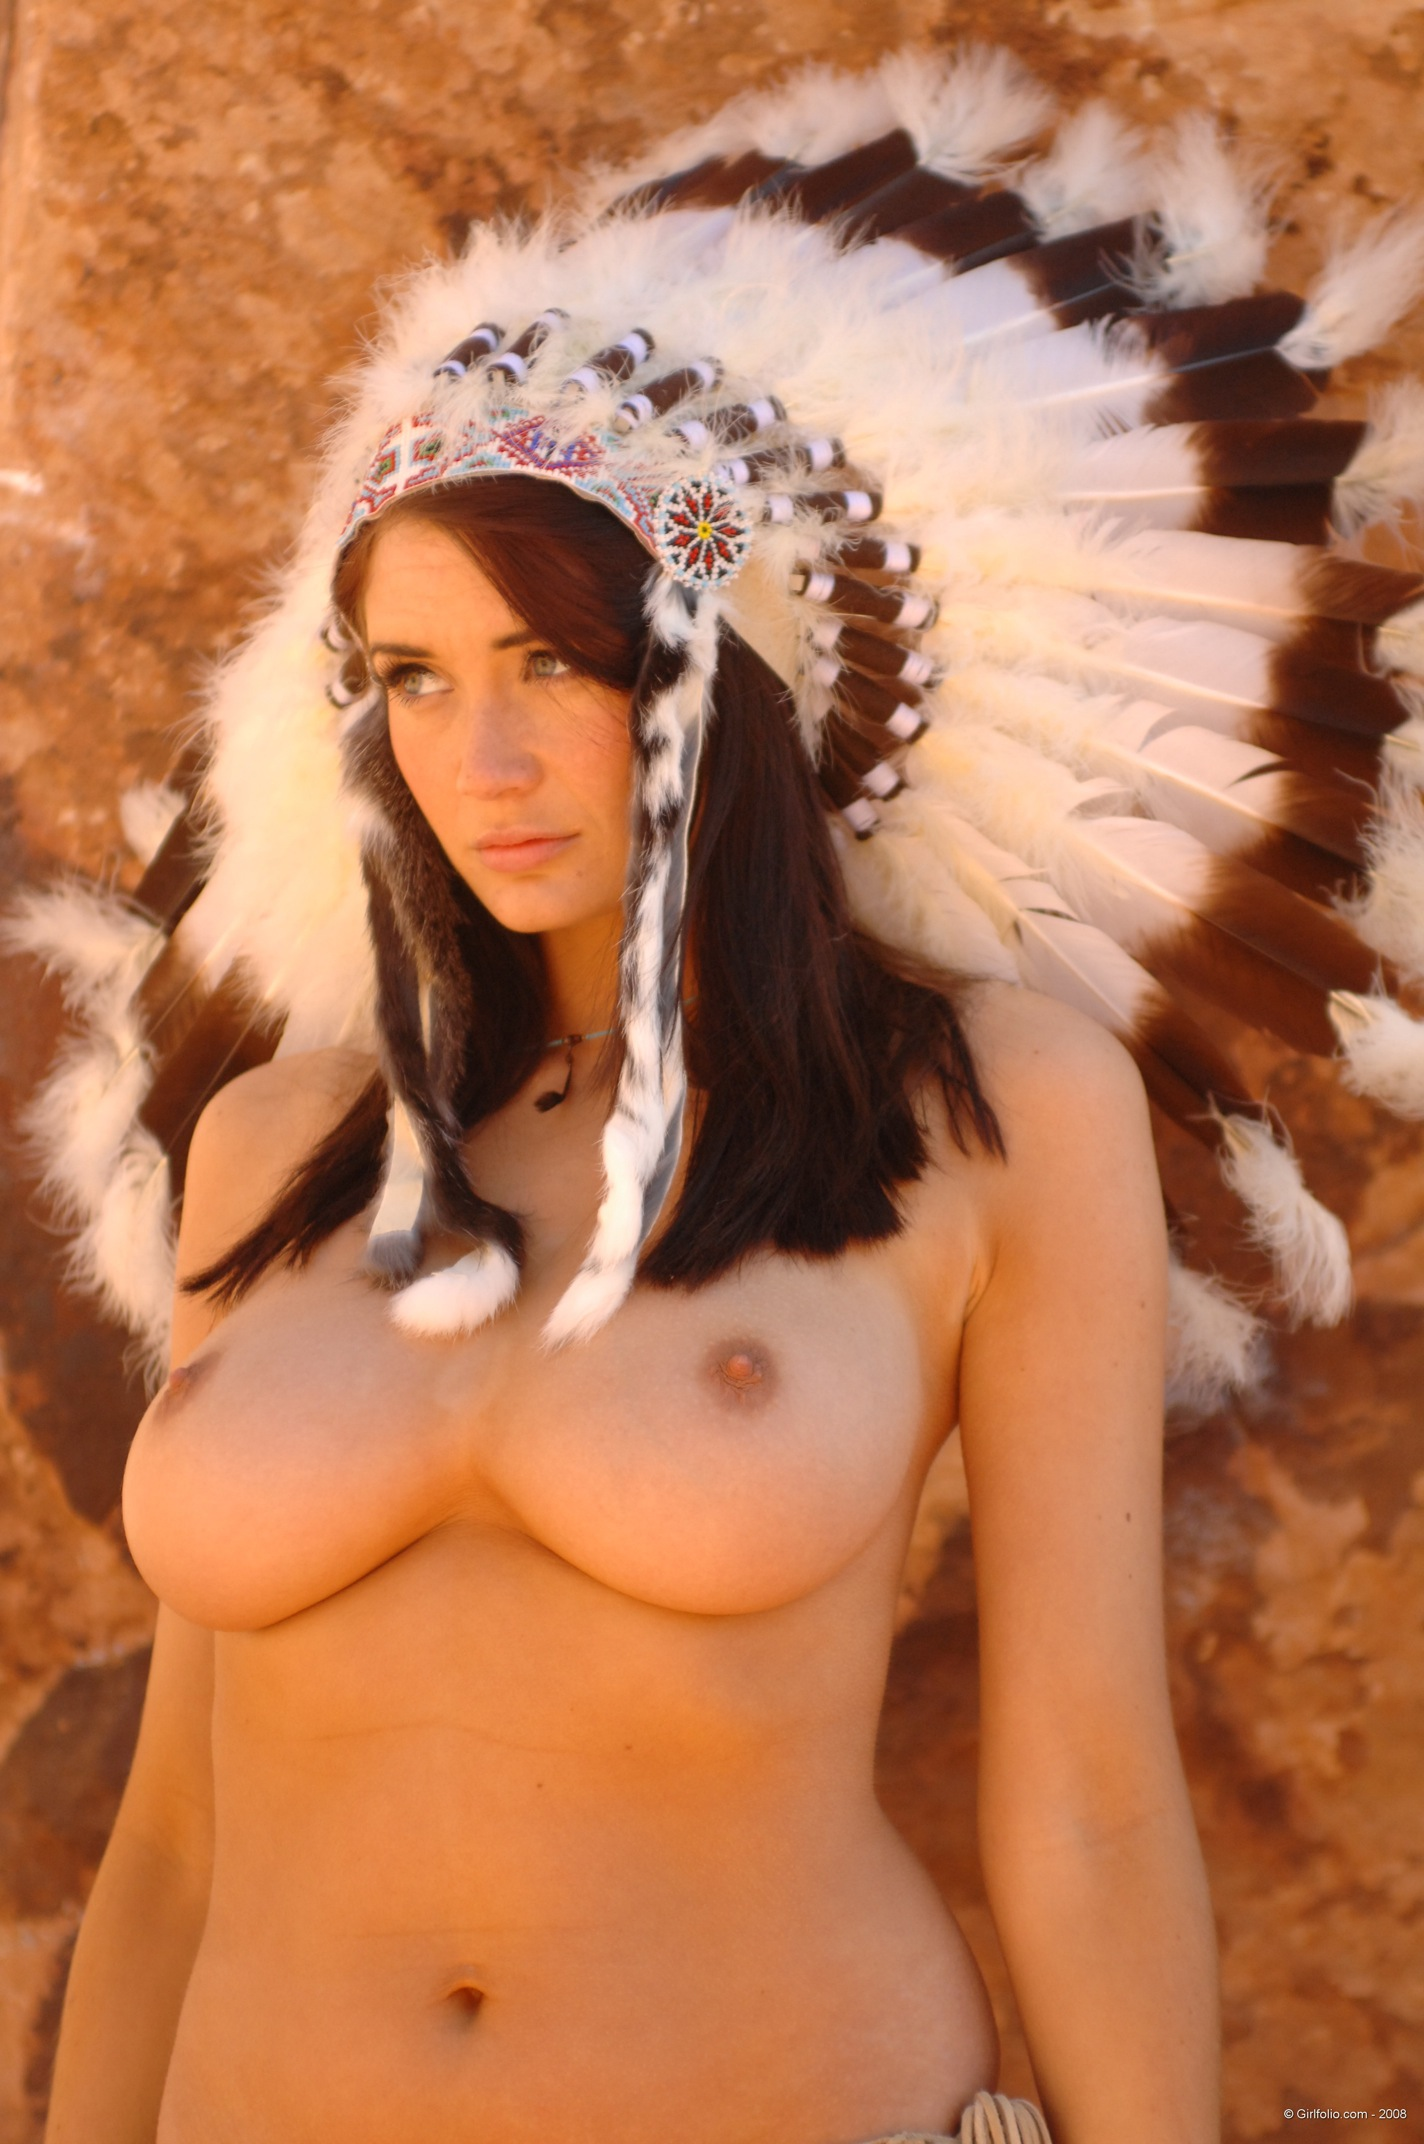 Anal american indian girl cyrus